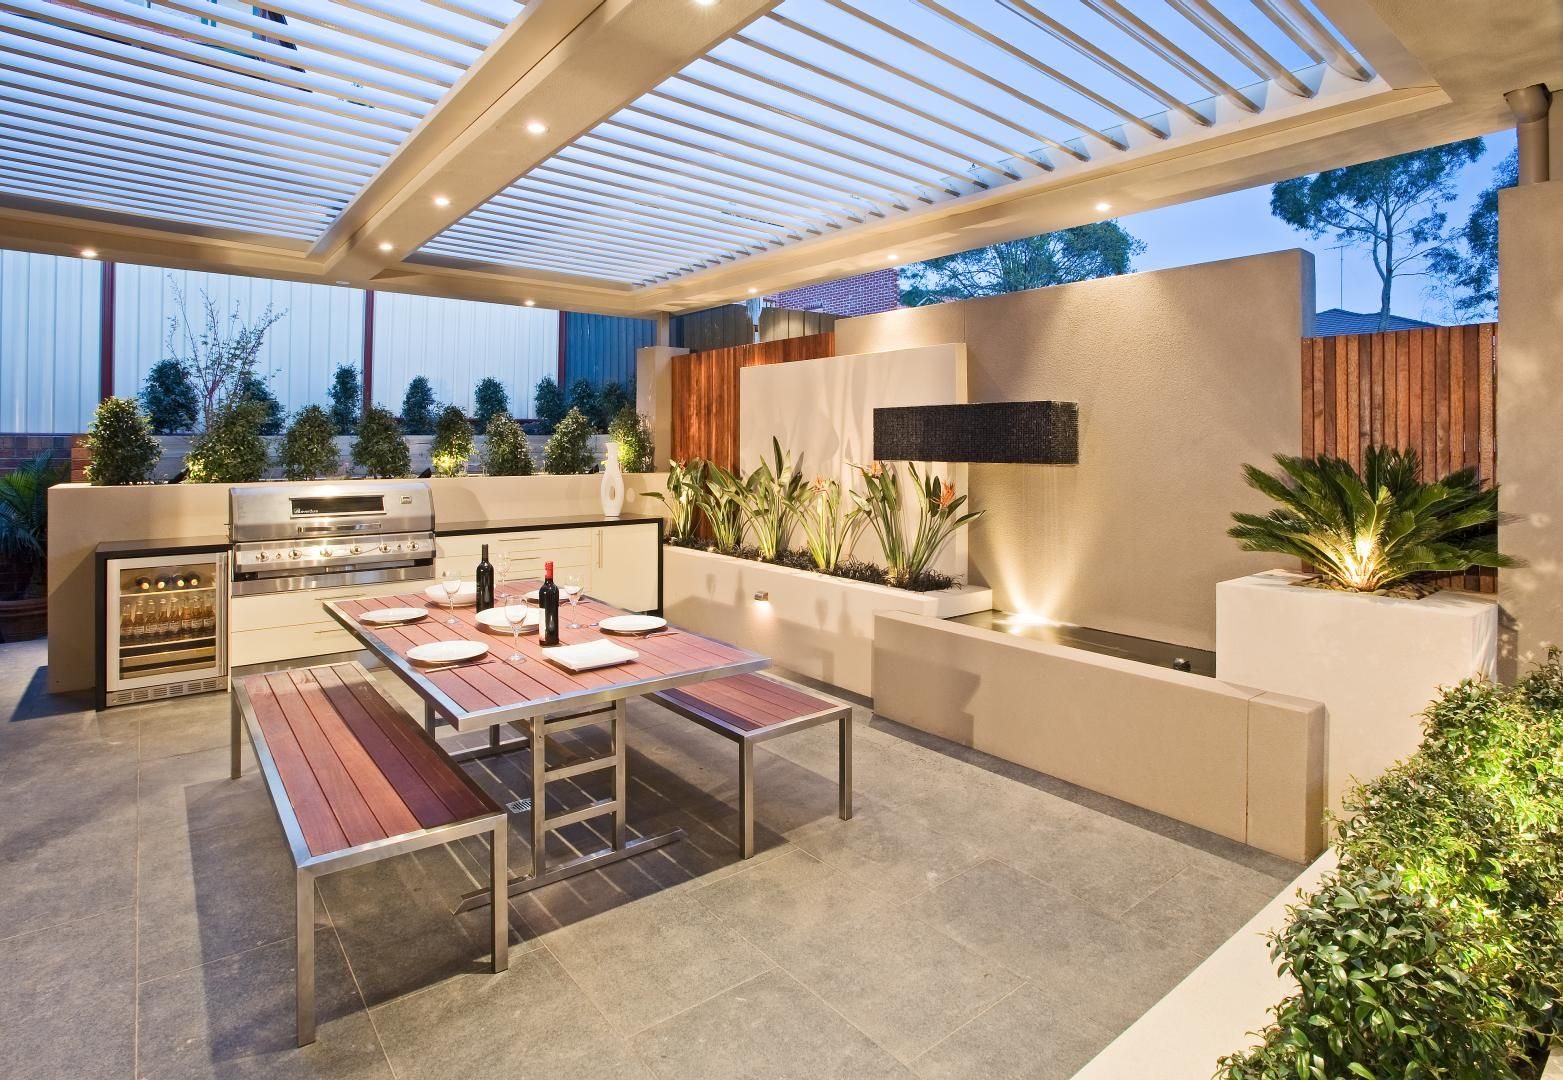 Outdoor Entertaining Area. Project Design